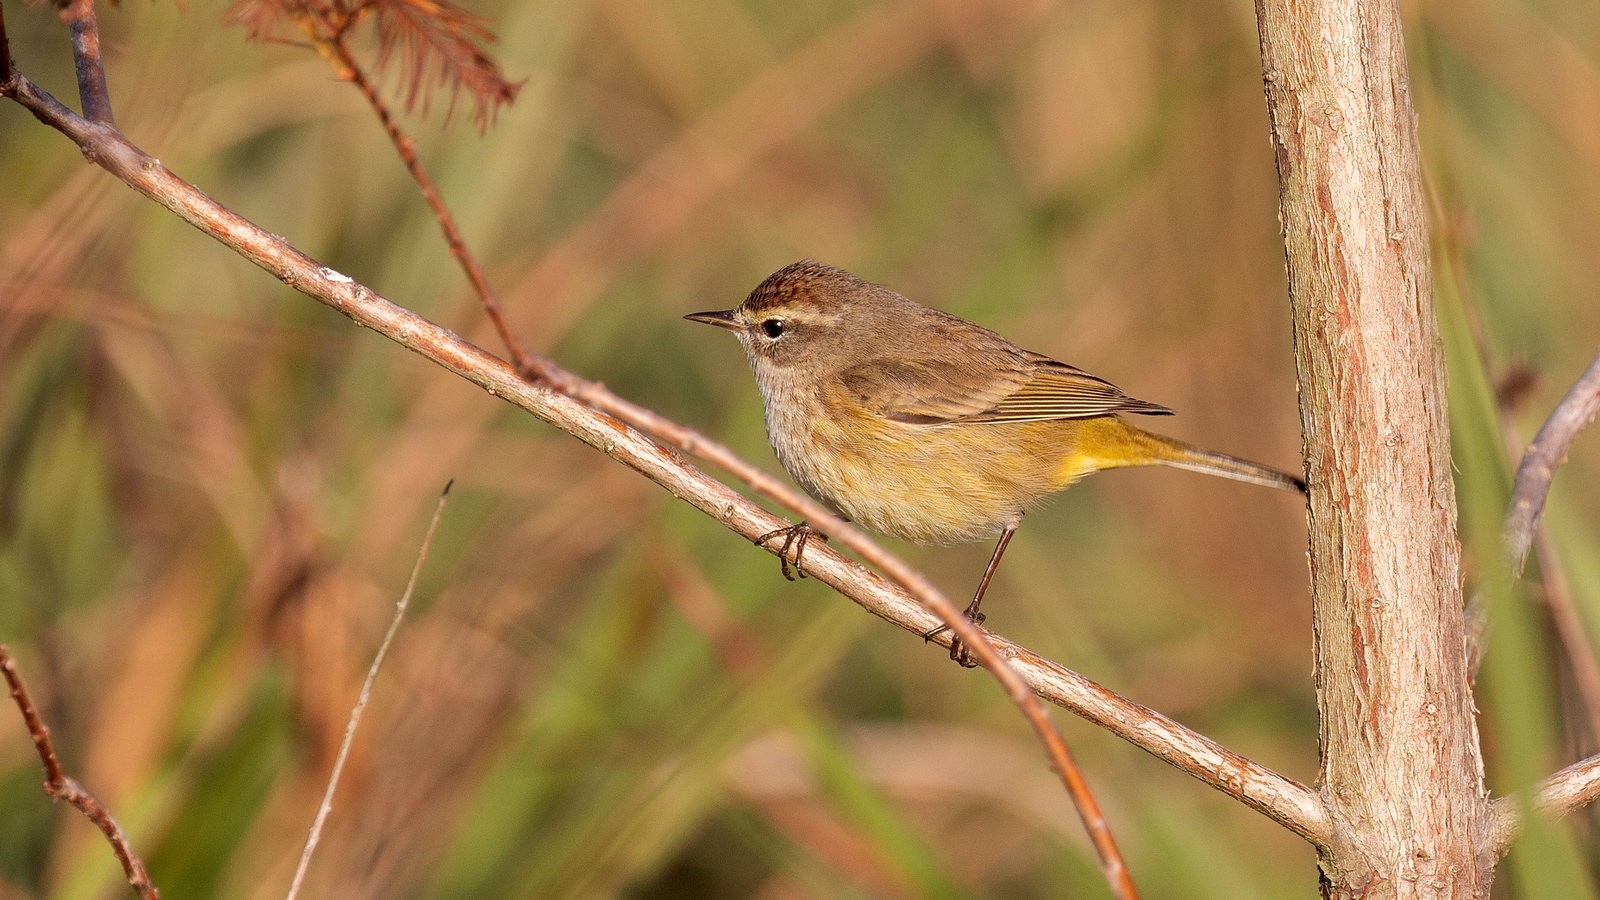 Photograph of a Palm Warbler